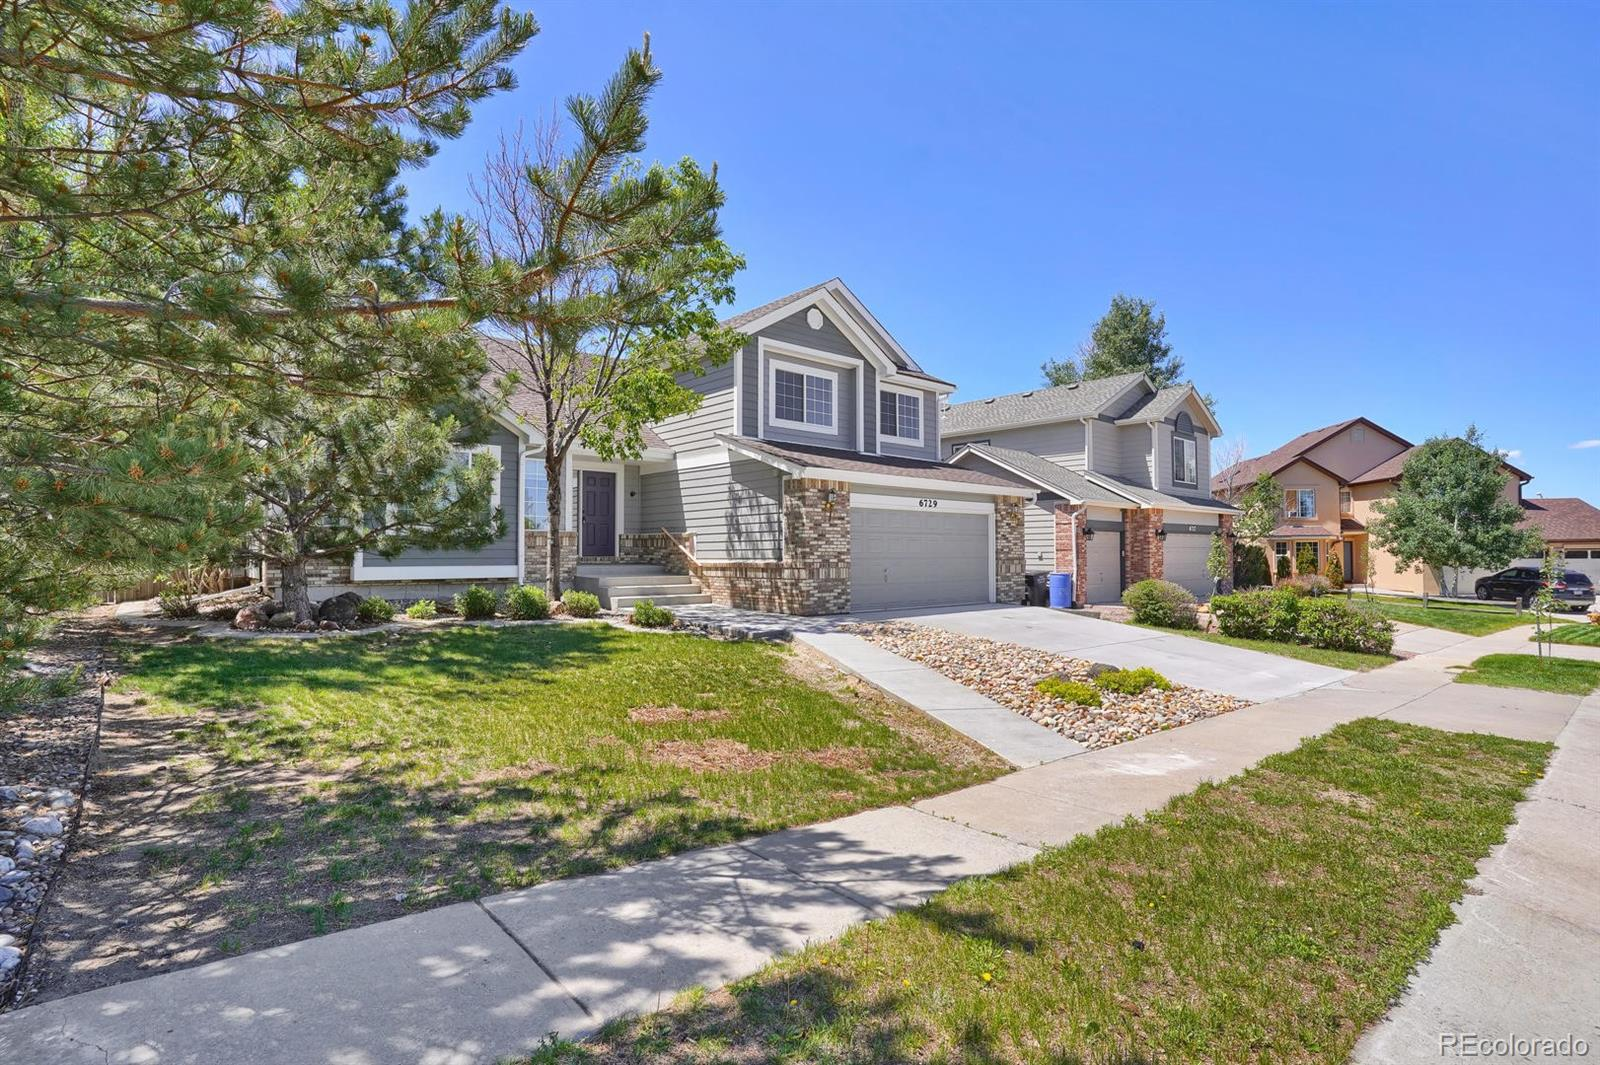 MLS# 1530283 - 6 - 6729 Stockwell Drive, Colorado Springs, CO 80922